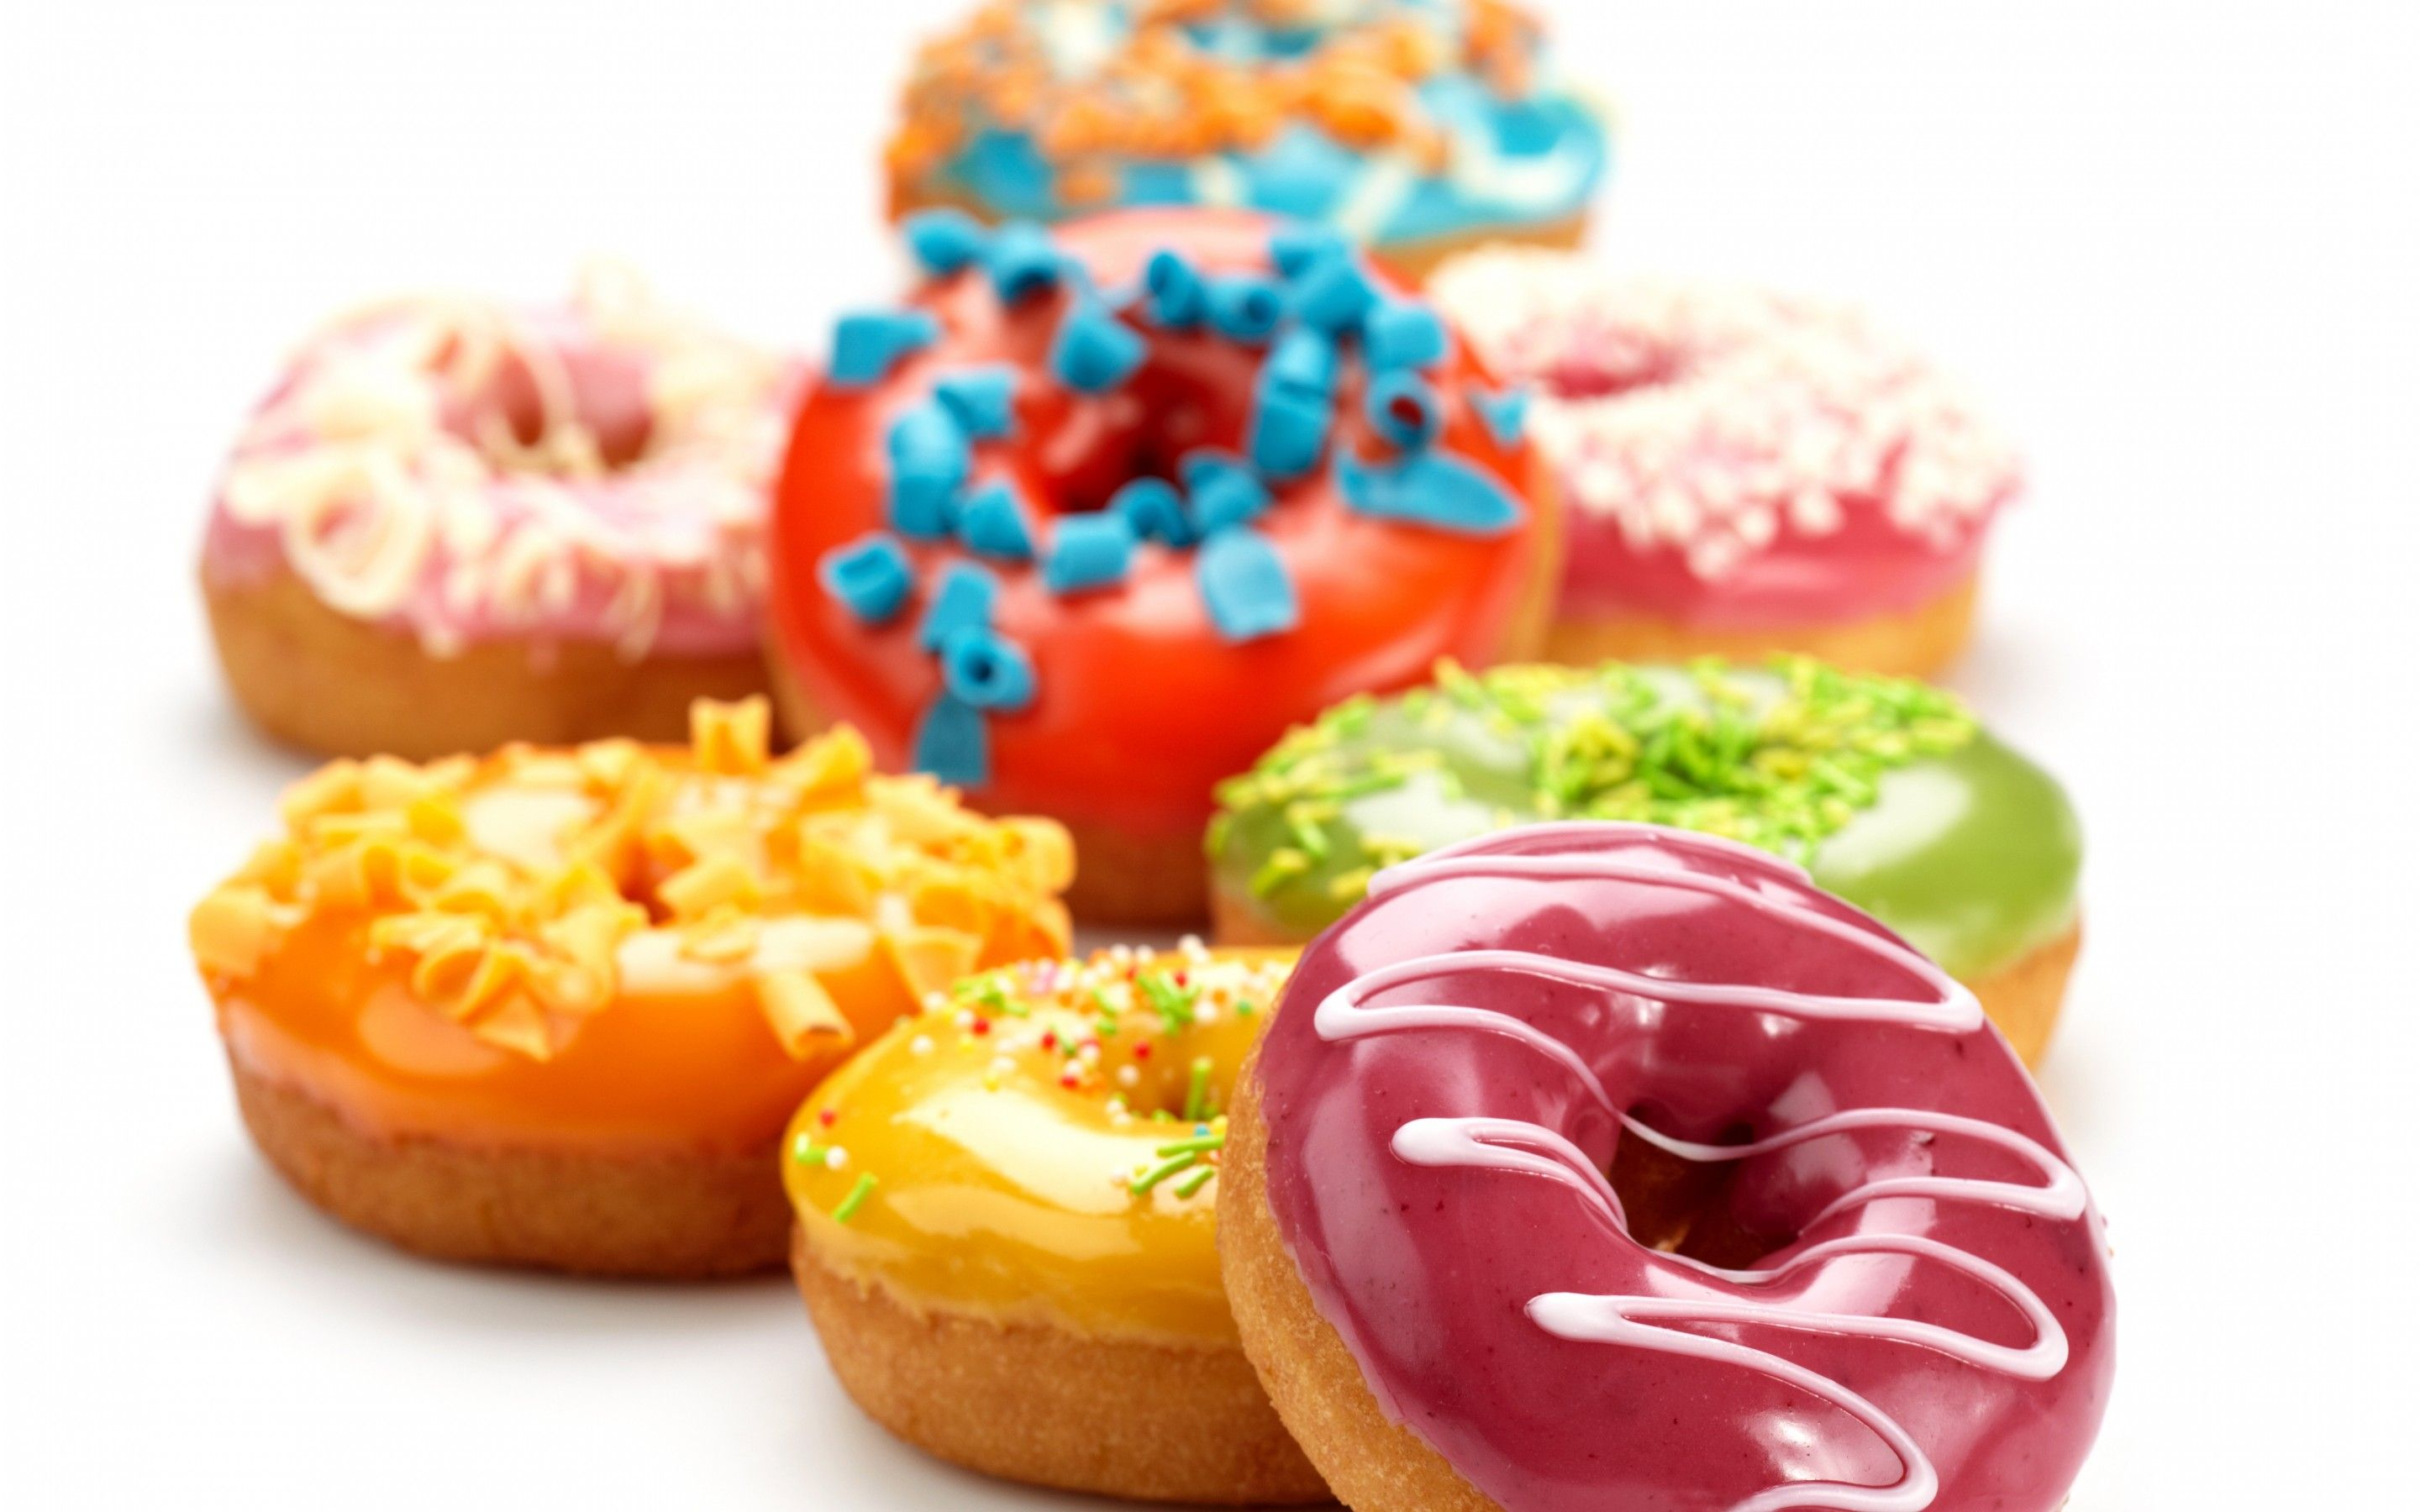 2880x1800 75 Doughnut HD Wallpapers | Background Images - Wallpaper Abyss